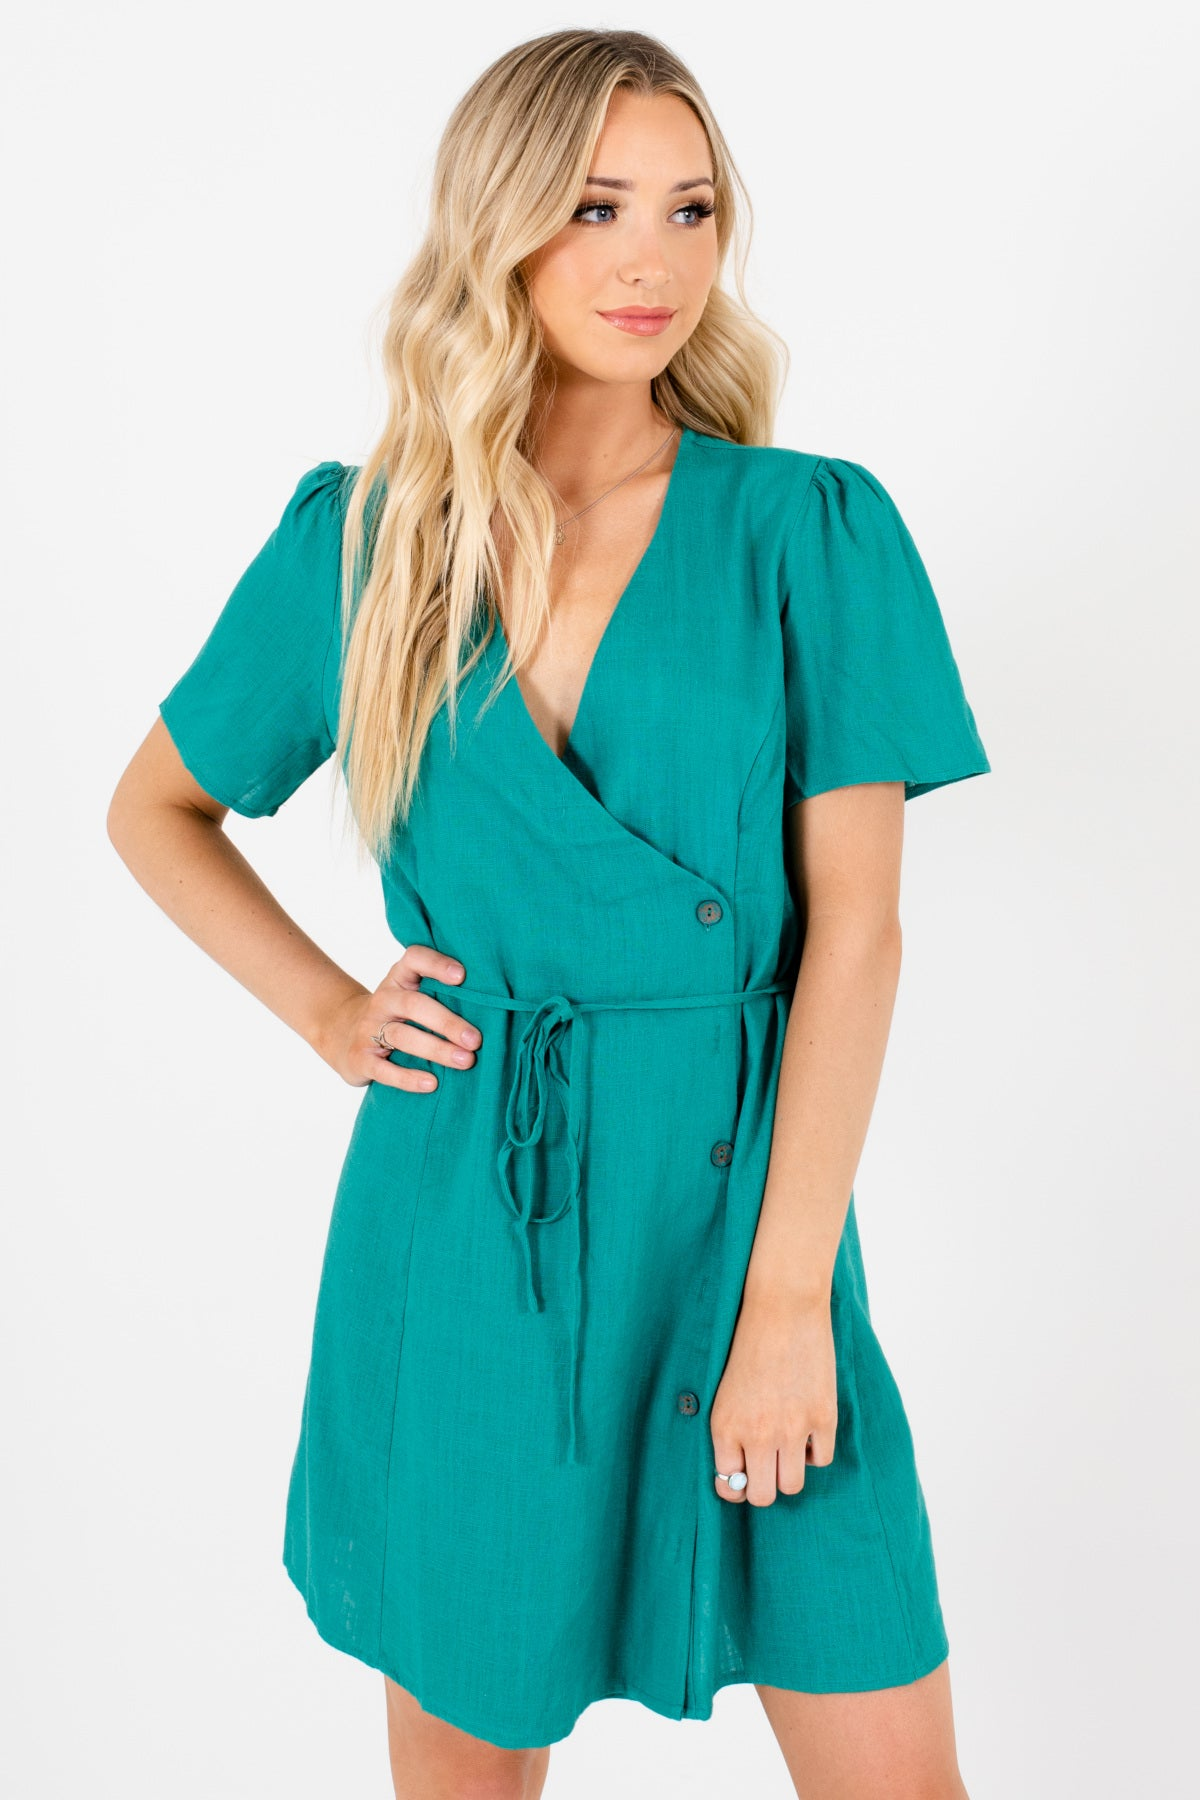 Kelly Green Faux Wrap Button-Up Mini Dresses Affordable Online Boutique